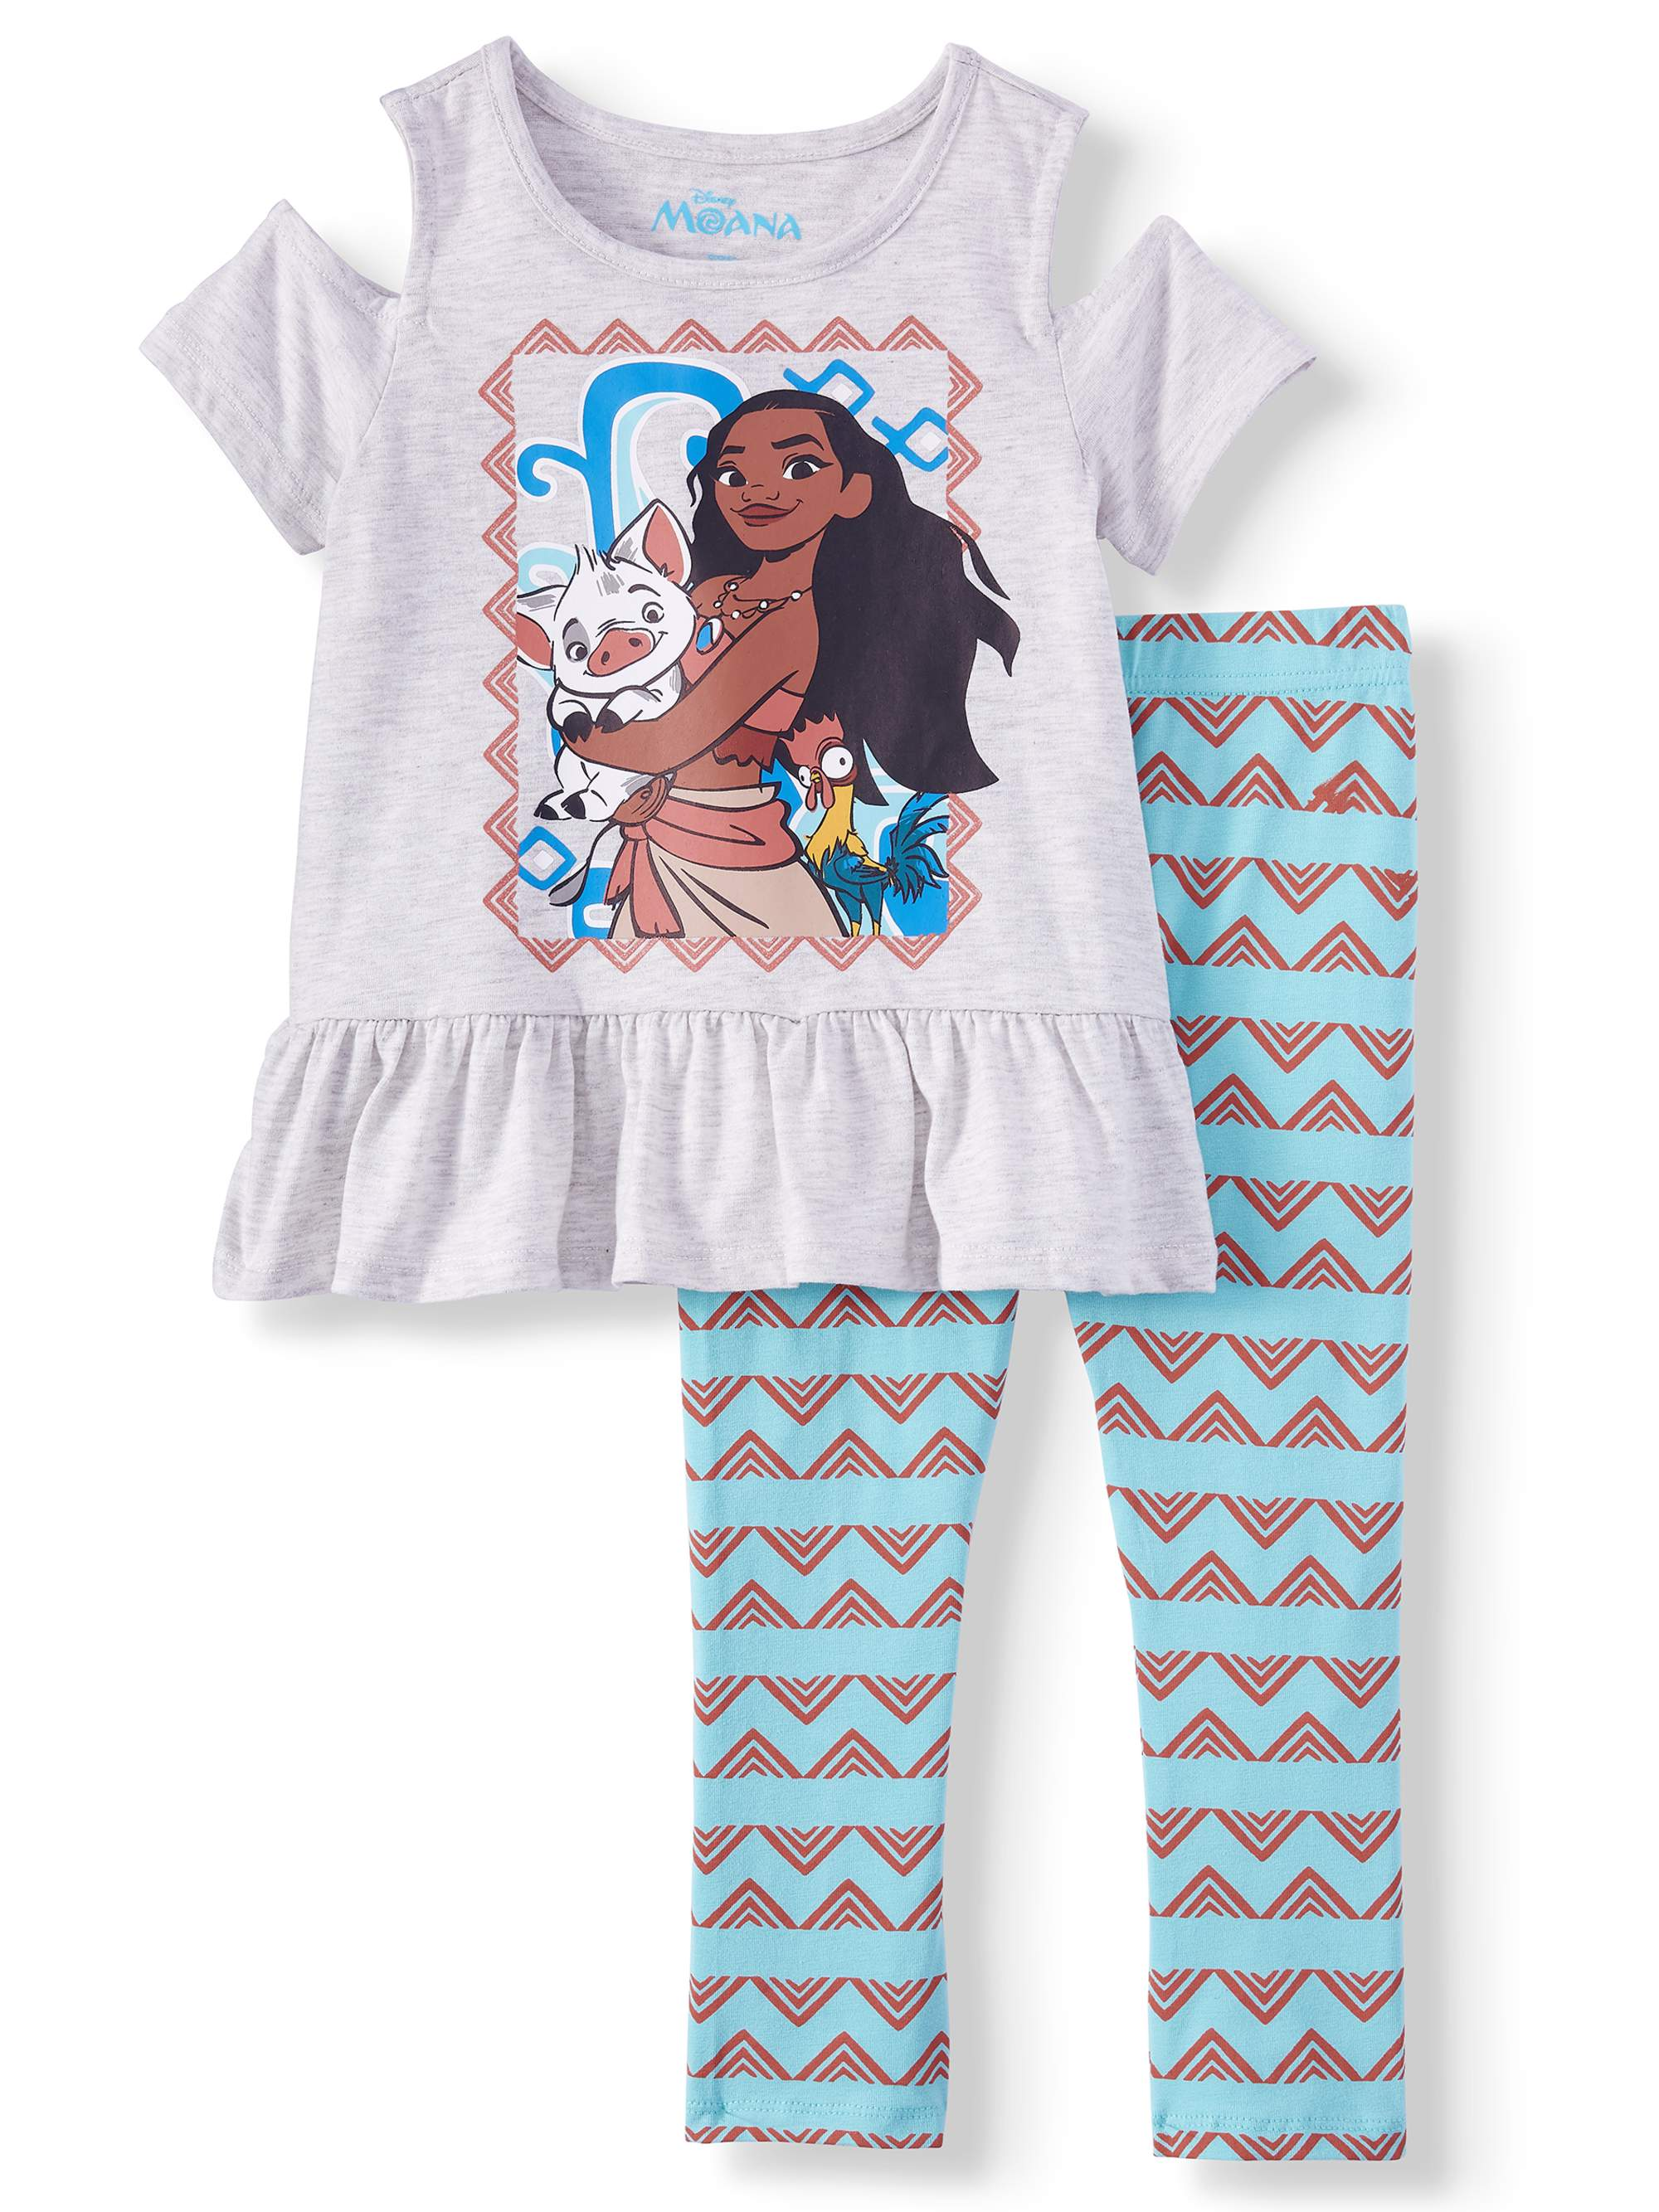 Moana Cold Shoulder Tee and Capri Legging, 2-Piece Outfit Set (Little Girls)